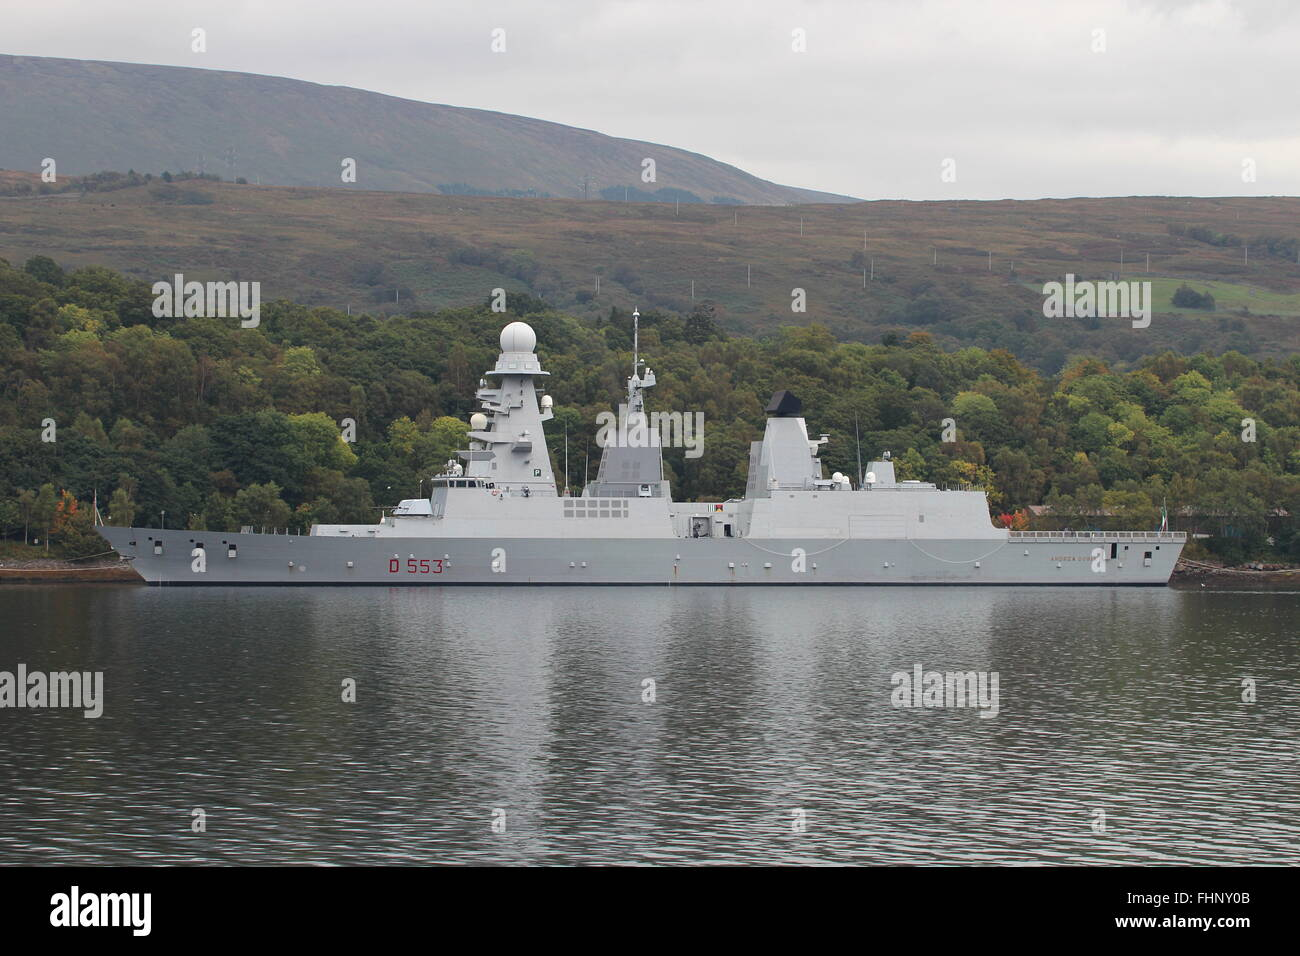 ITS Andrea Doria (D533), a Horizon-class destroyer of the Italian Navy, berthed at Faslane before Exercise Joint - Stock Image